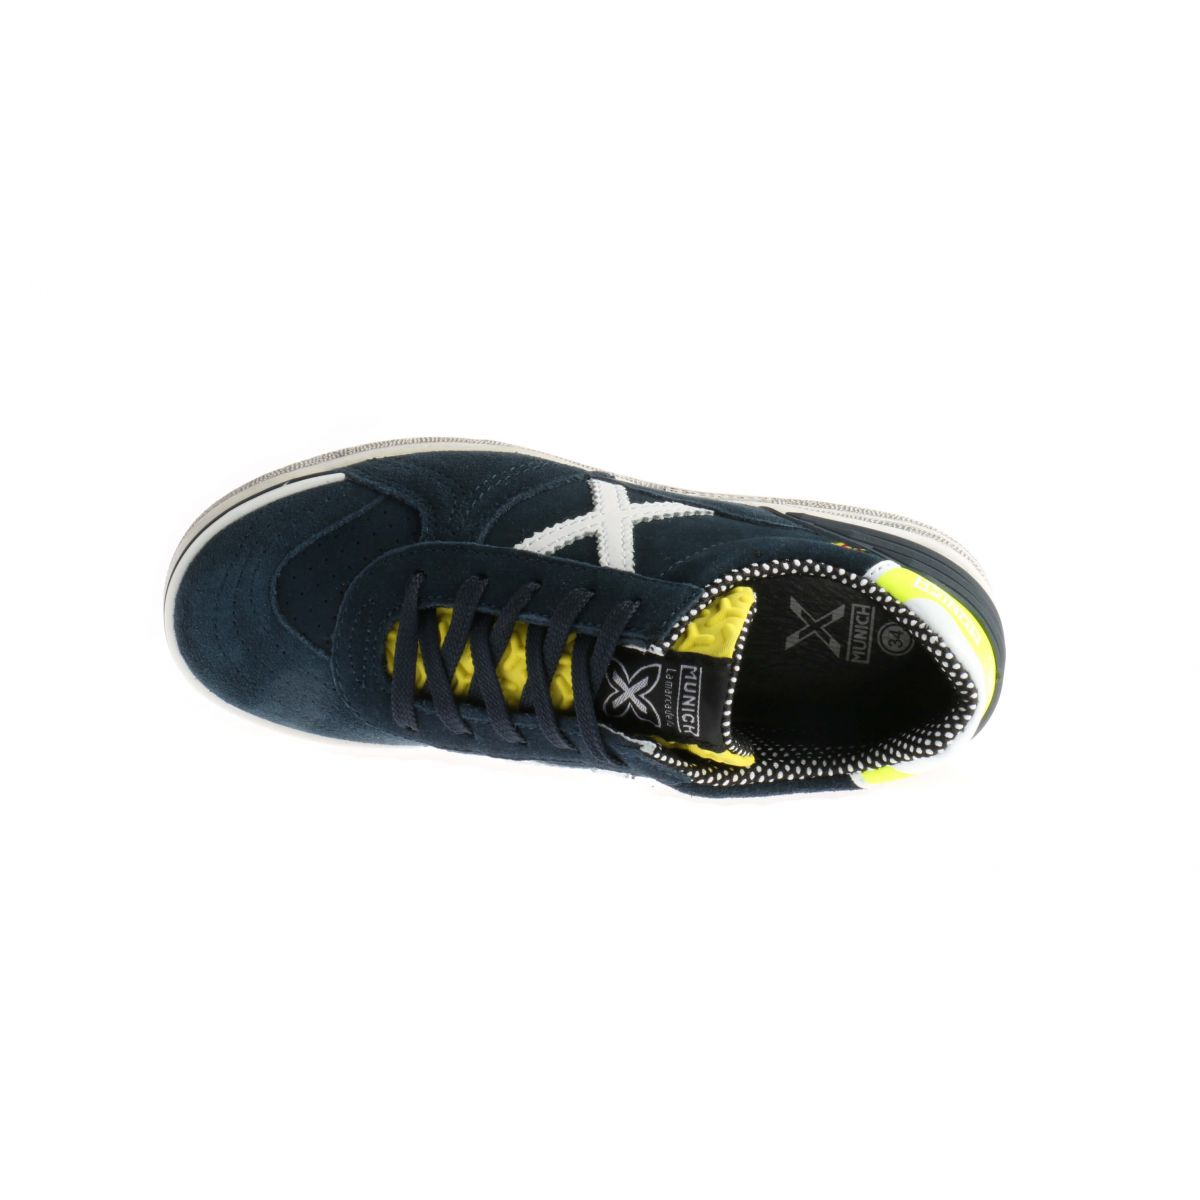 Munich G3 Sneakers Blauw Veters